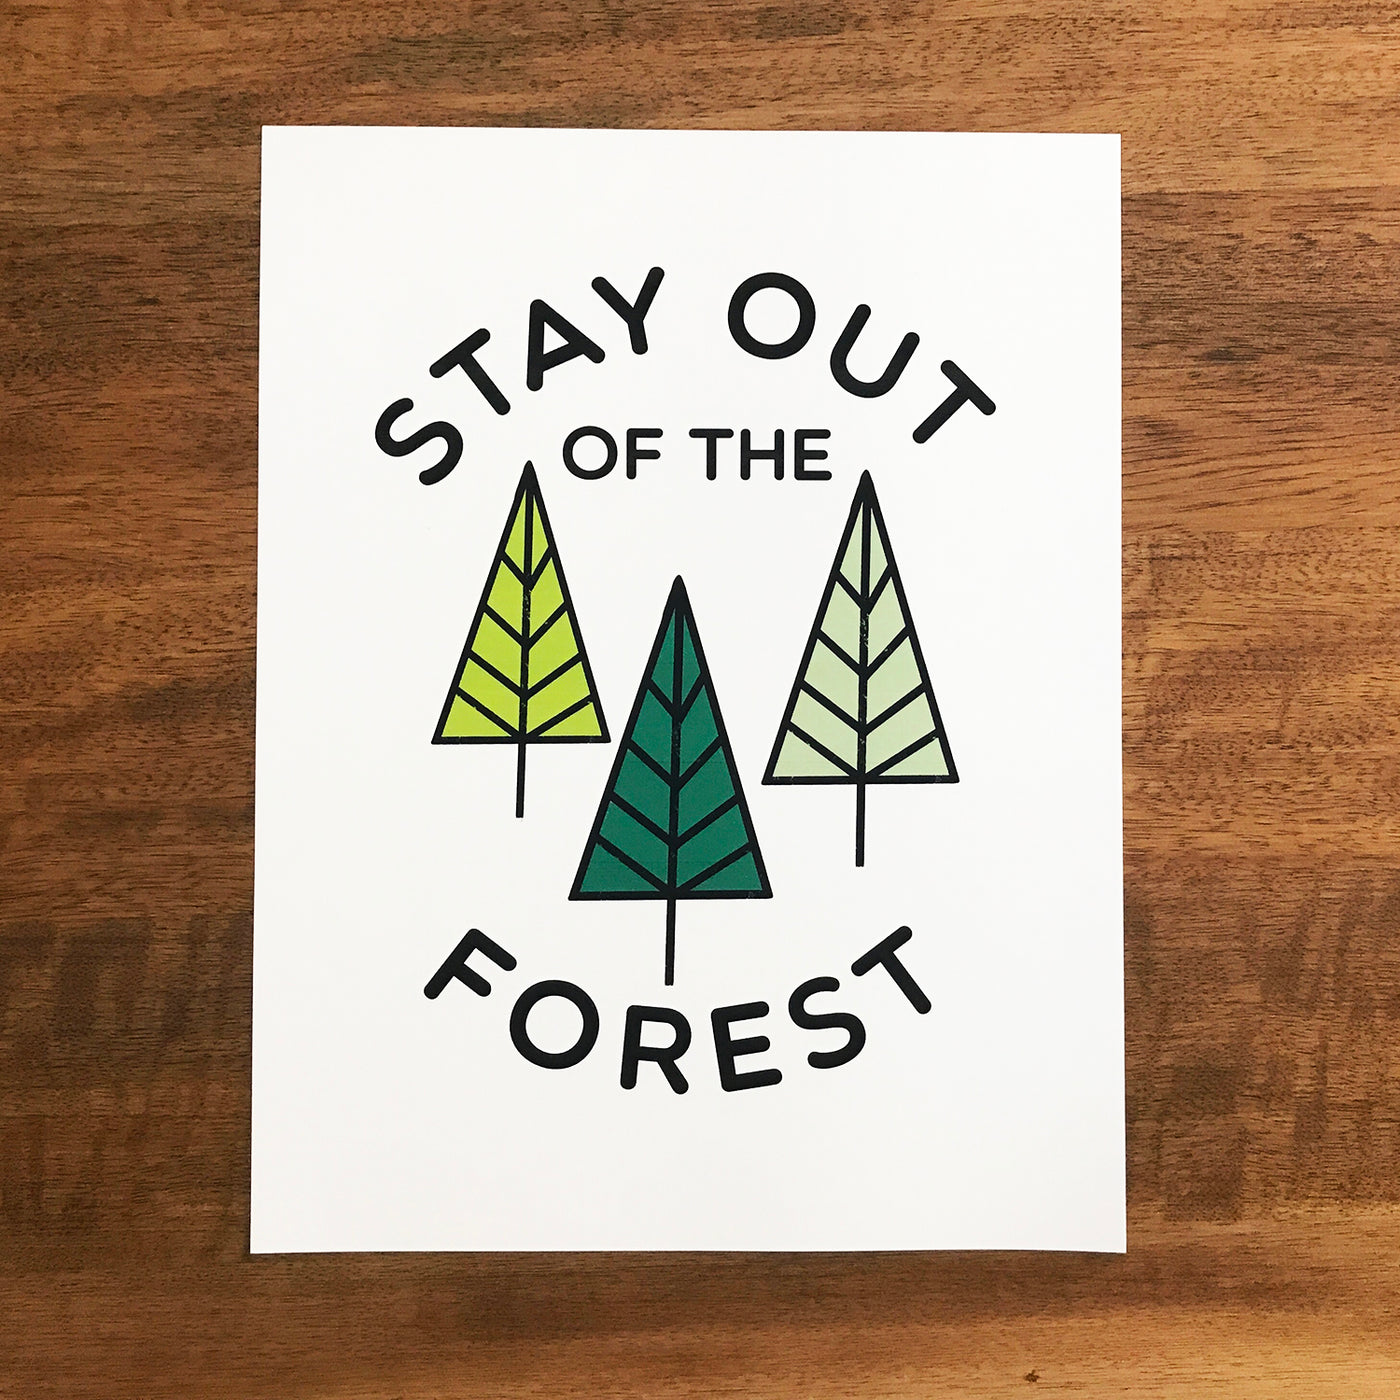 Stay Out of the Forest Print - SleepyMountain